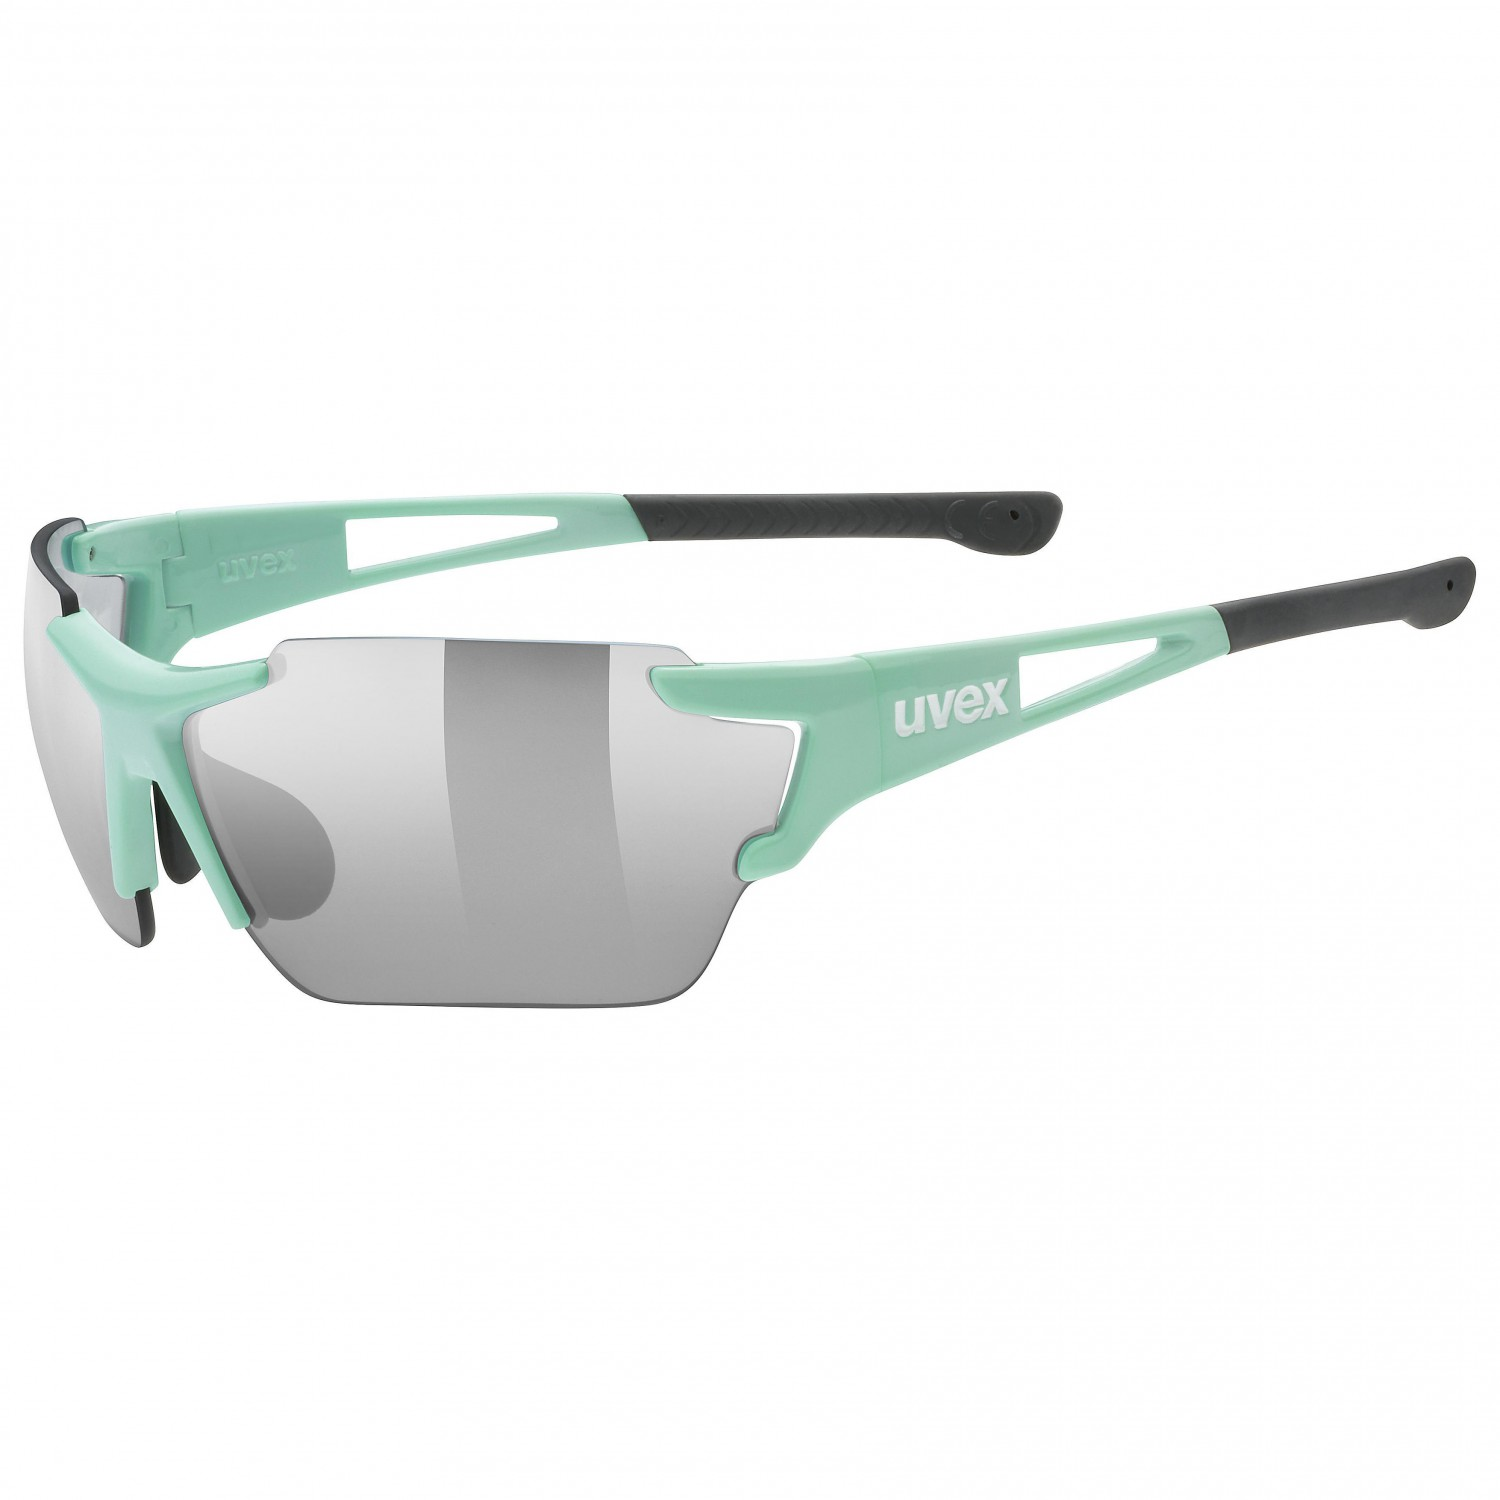 Uvex Sportstyle 803 Race Variomatic Litemirror S1-3 - Cycling glasses  85b16f651a8